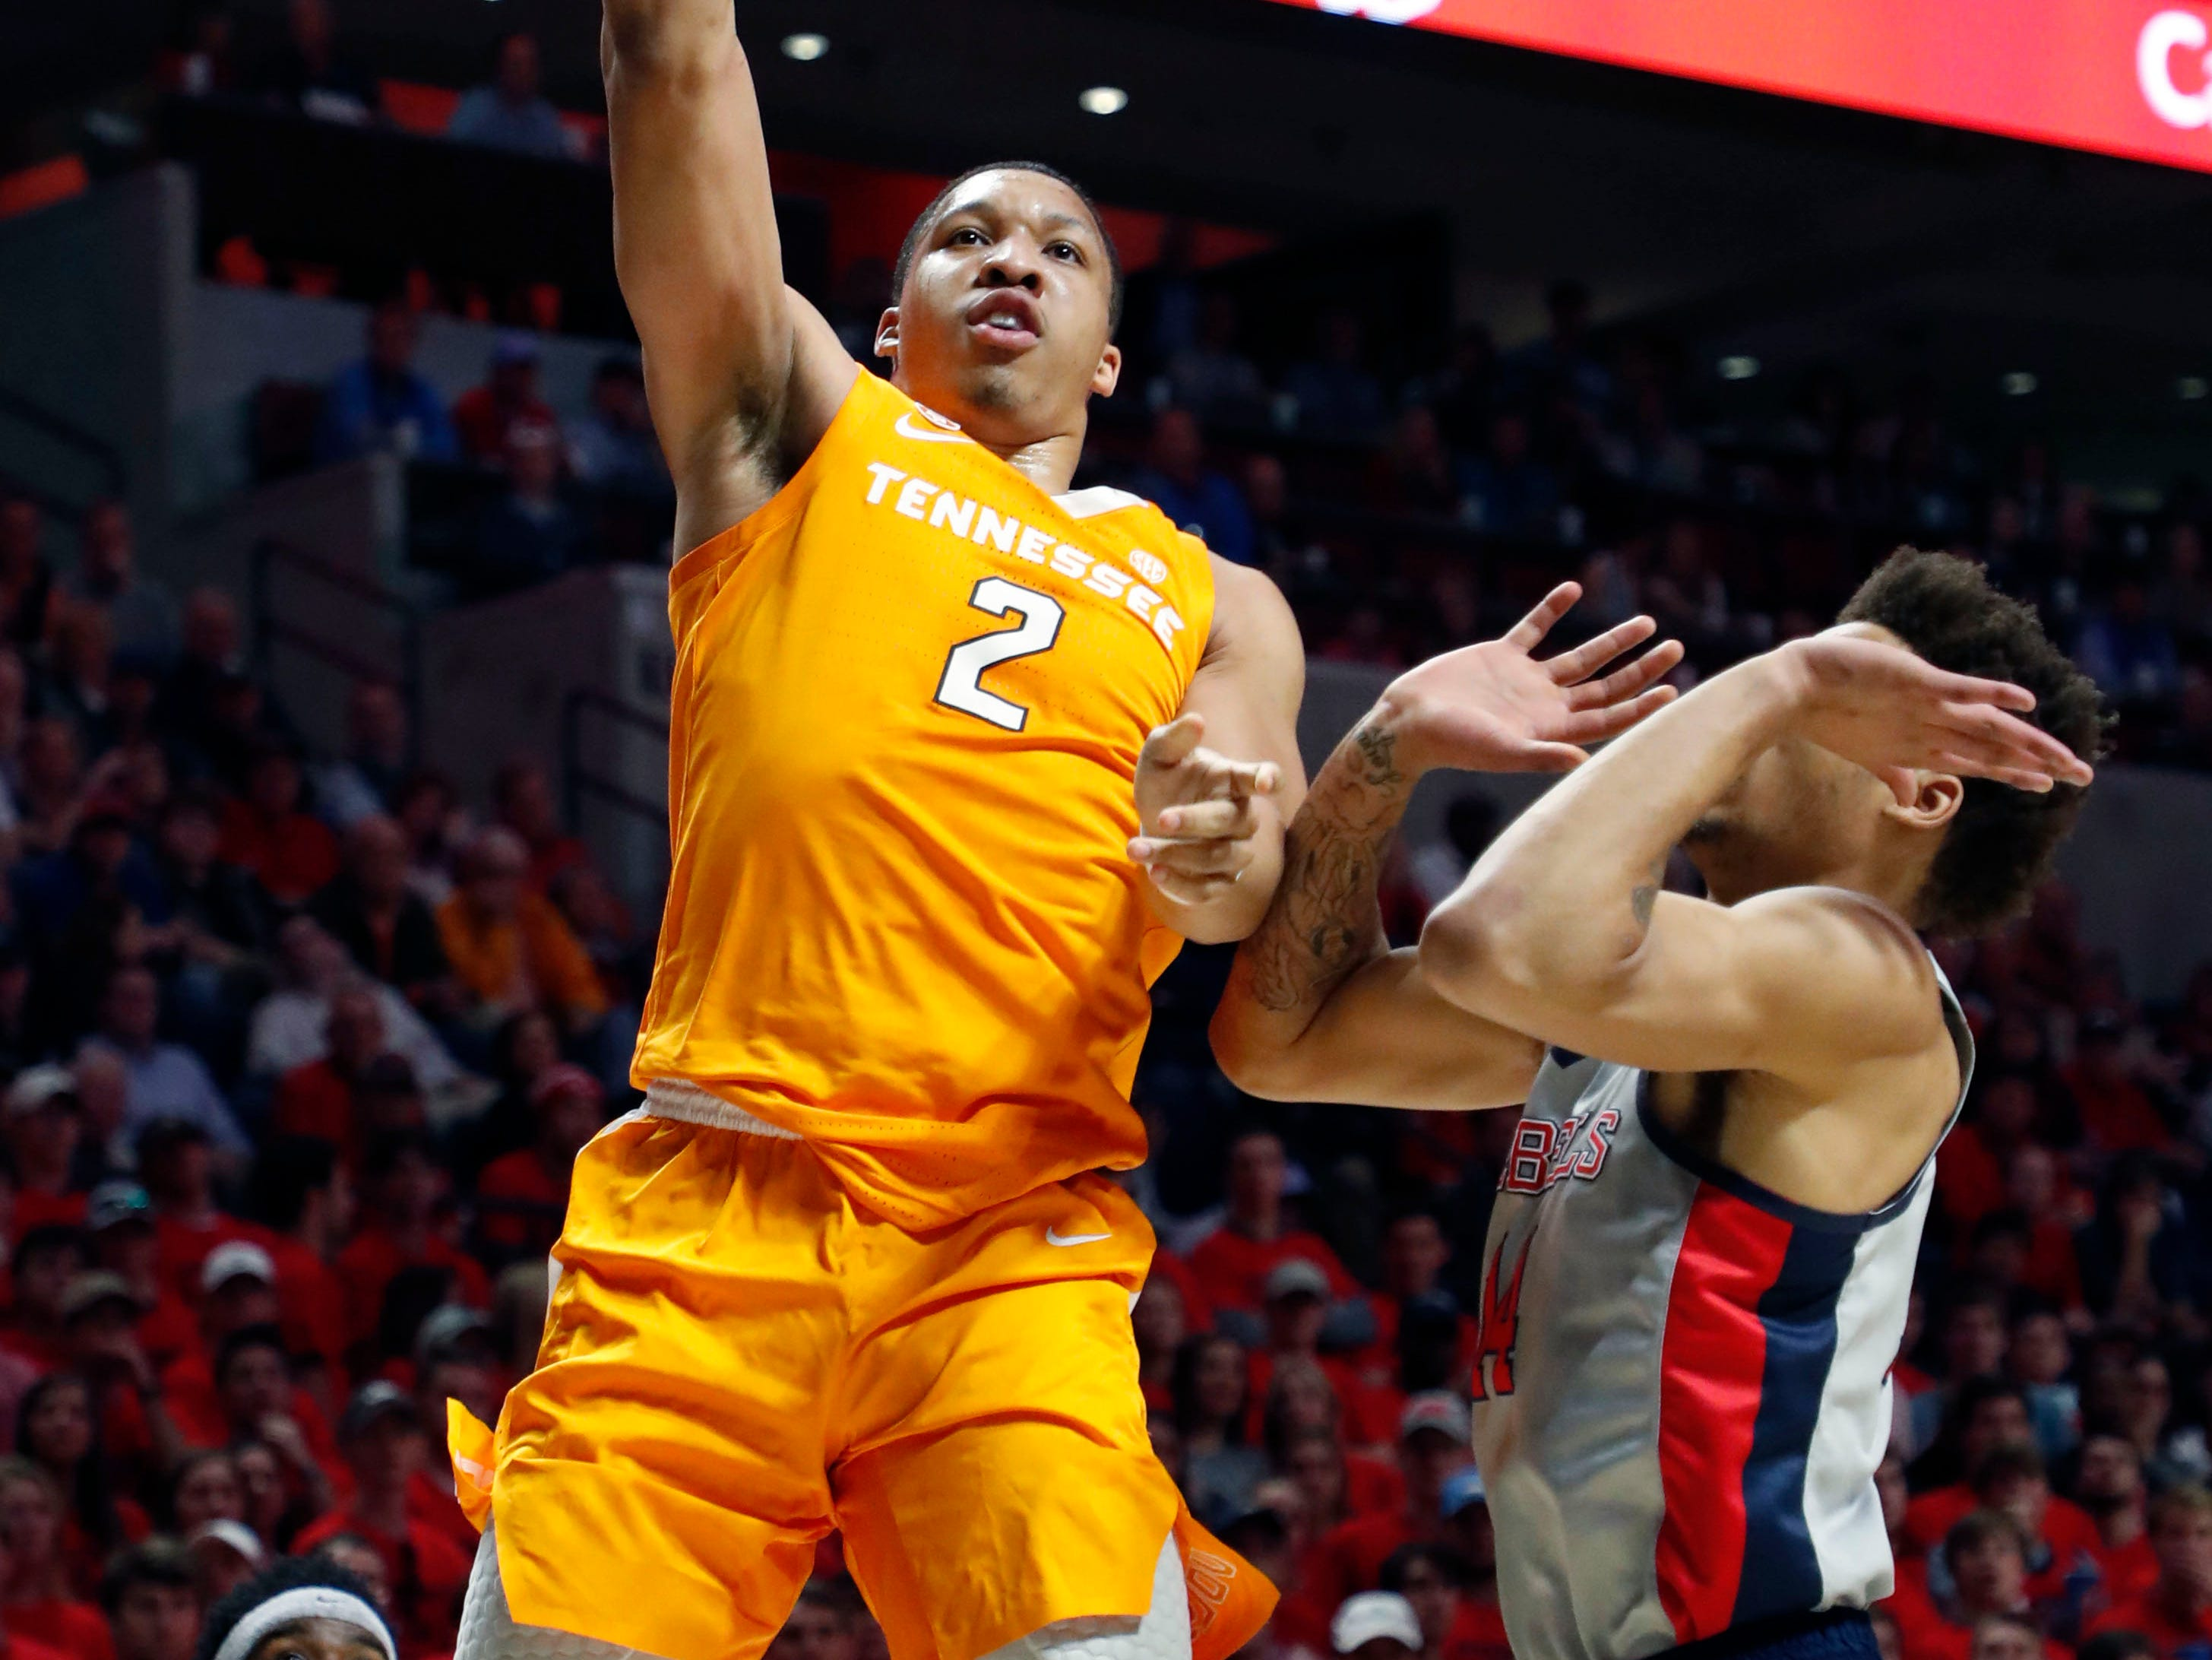 Tennessee forward Grant Williams (2) shoots over a Mississippi defender during the first half of an NCAA college basketball game in Oxford, Miss., Wednesday, Feb. 27, 2019. Tennessee won 73-71. (AP Photo/Rogelio V. Solis)